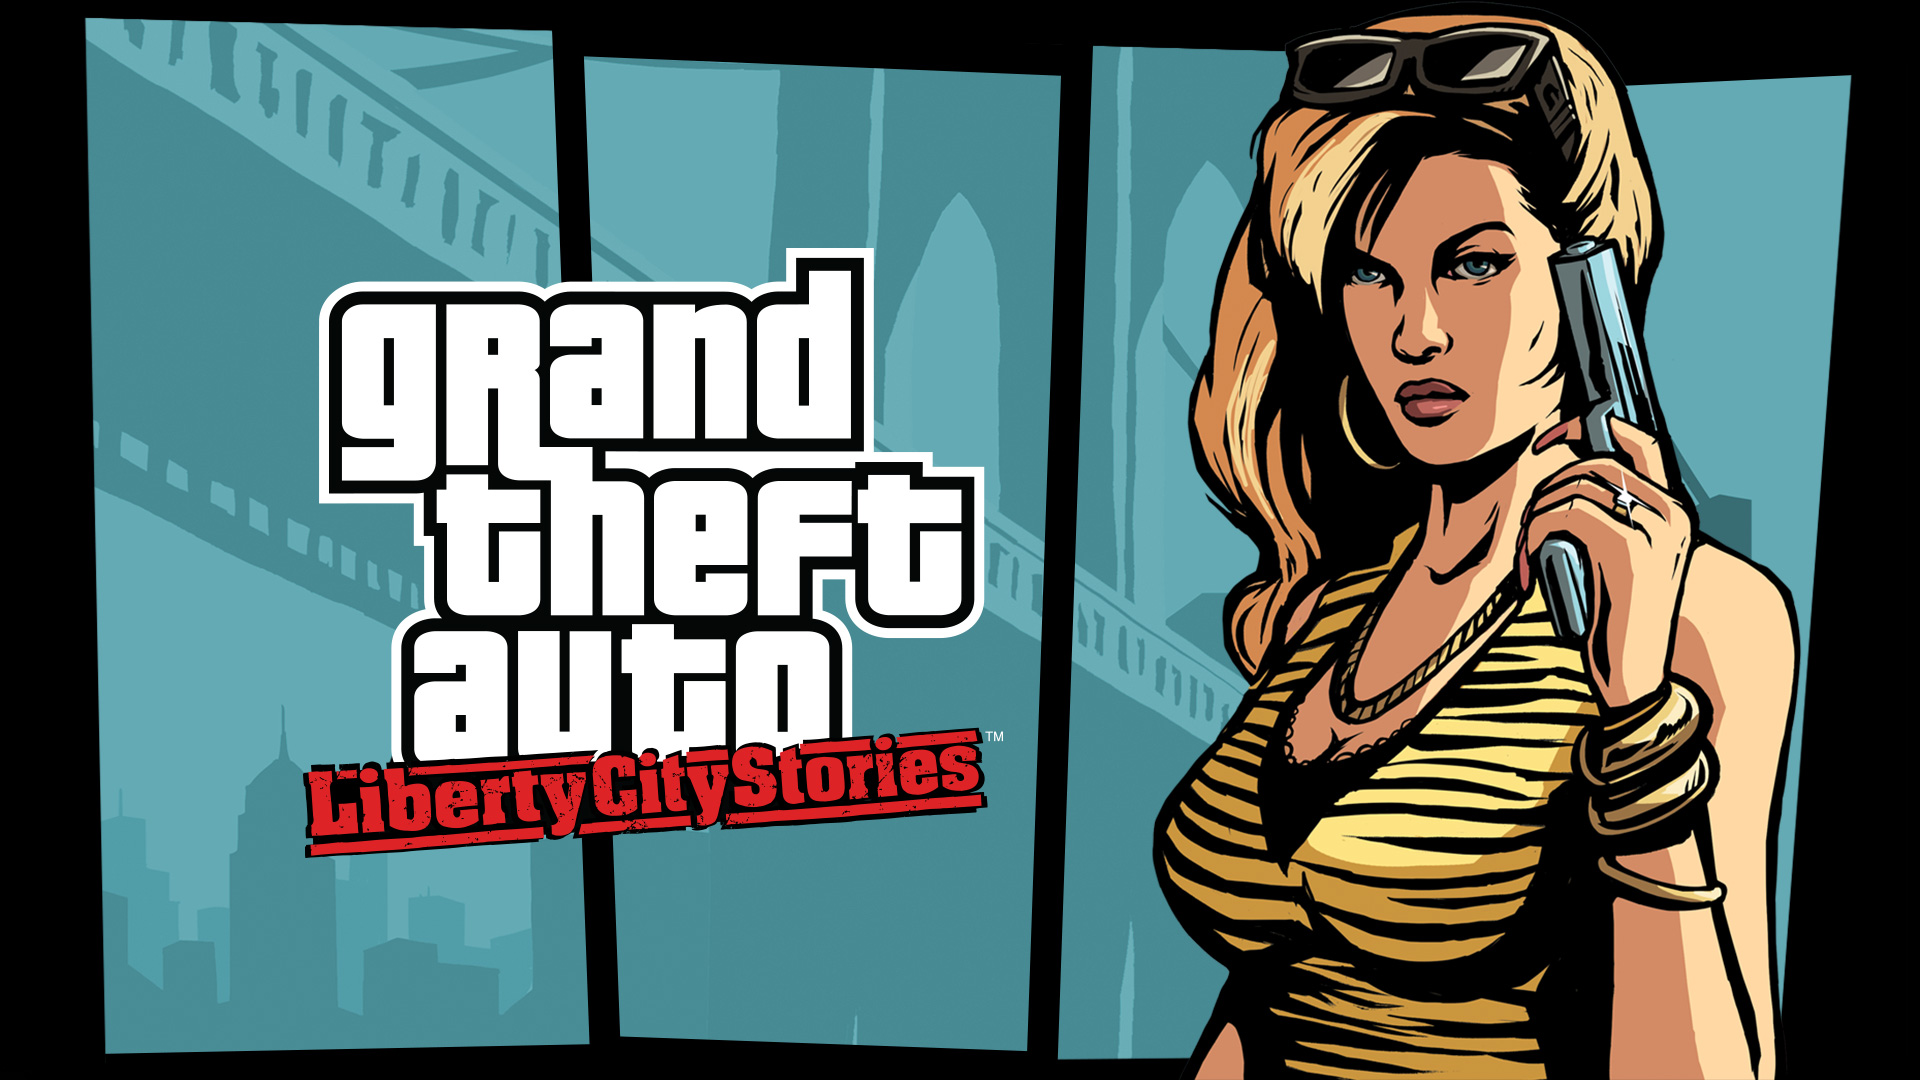 Grand Theft Auto: Liberty City Stories è ora disponibile per iOS, in arrivo a breve anche su dispositivi Android e Amazon